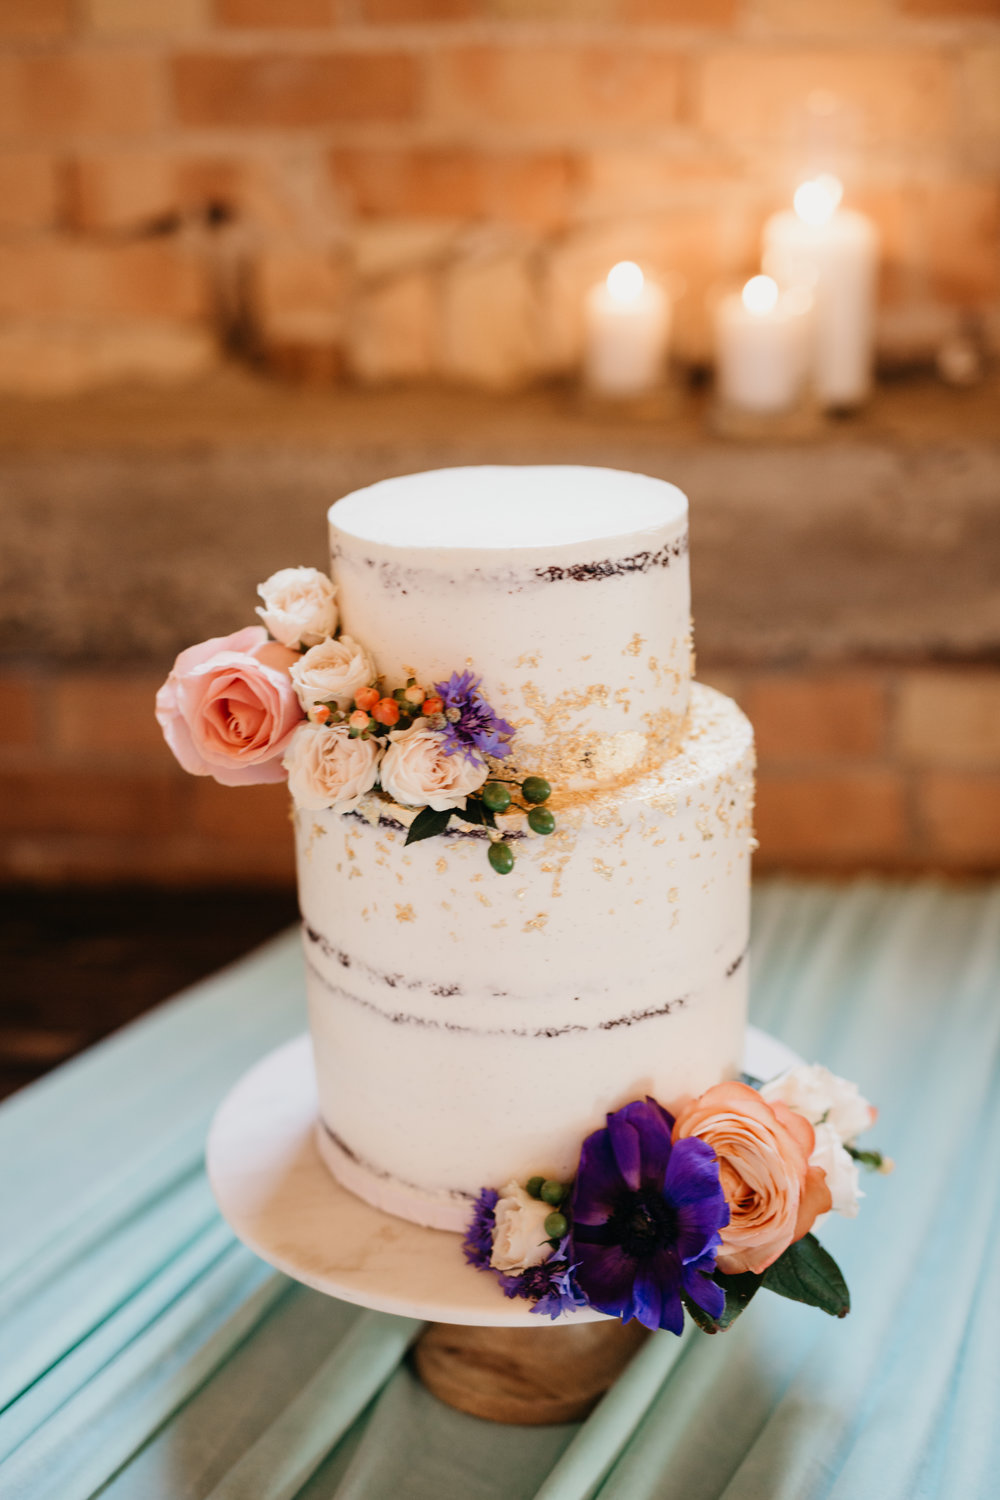 - what we doWe founded Southerly Event and Wedding Styling, LLC to provide expert services for the planning, styling, and conduct of incomparable weddings and events in Madison, Alabama and the surrounding area. Our passion is to create an event for you that is beyond ordinary.